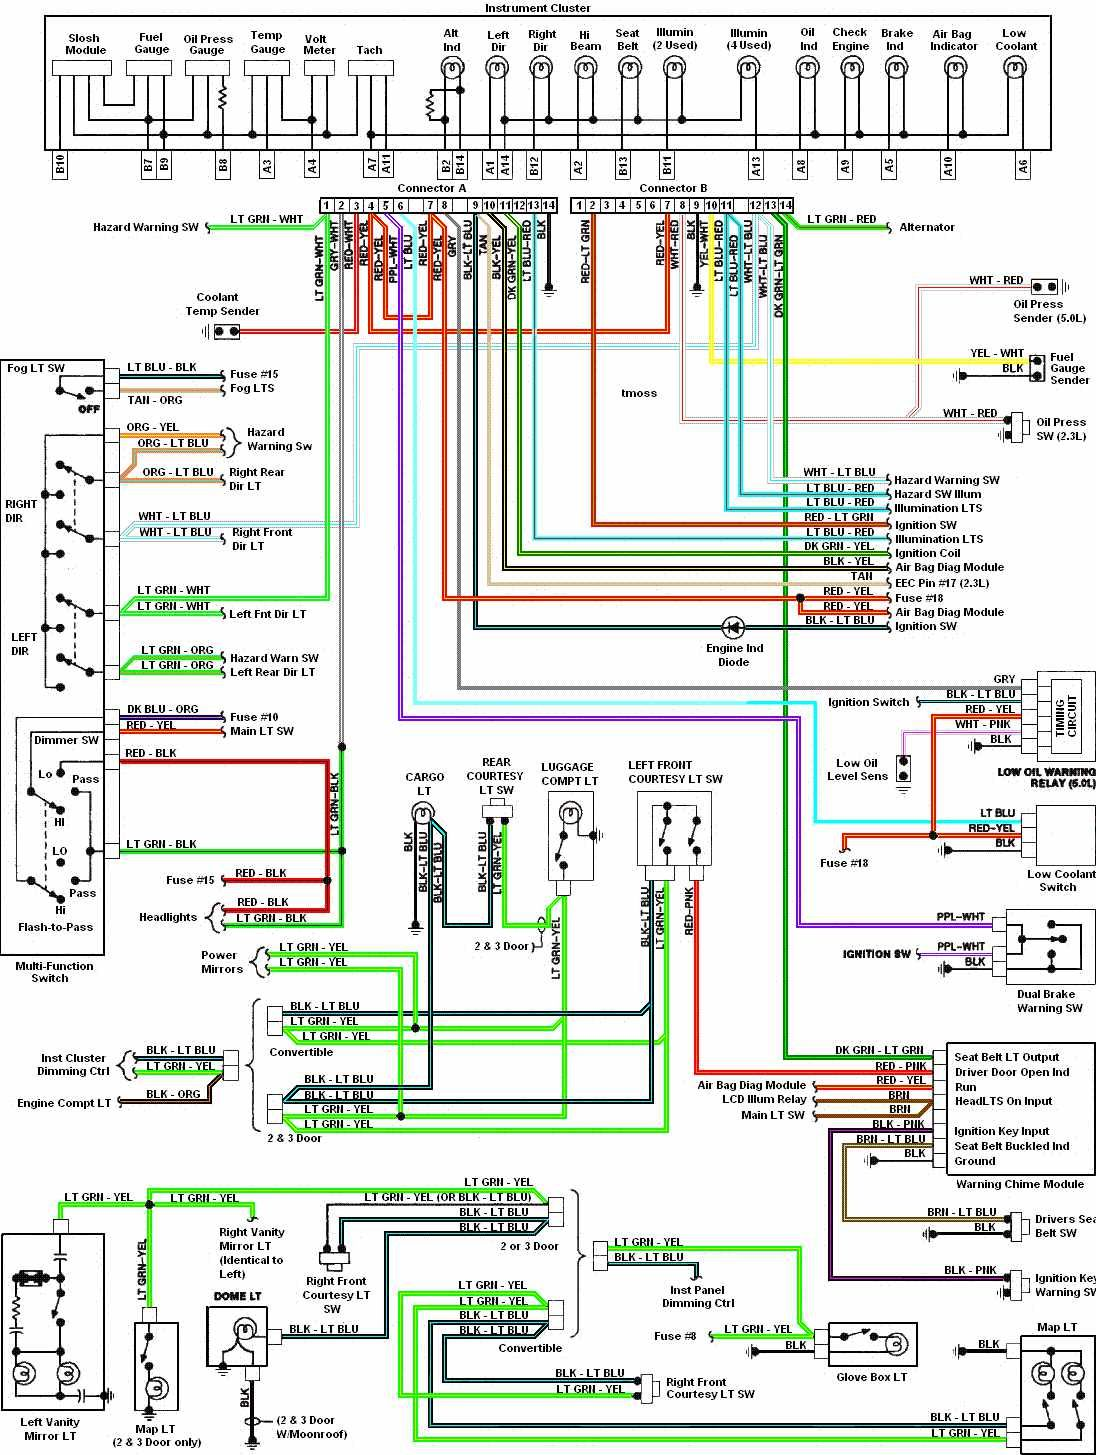 Wiring Diagram For Mustang Most Exciting Wiring Diagram